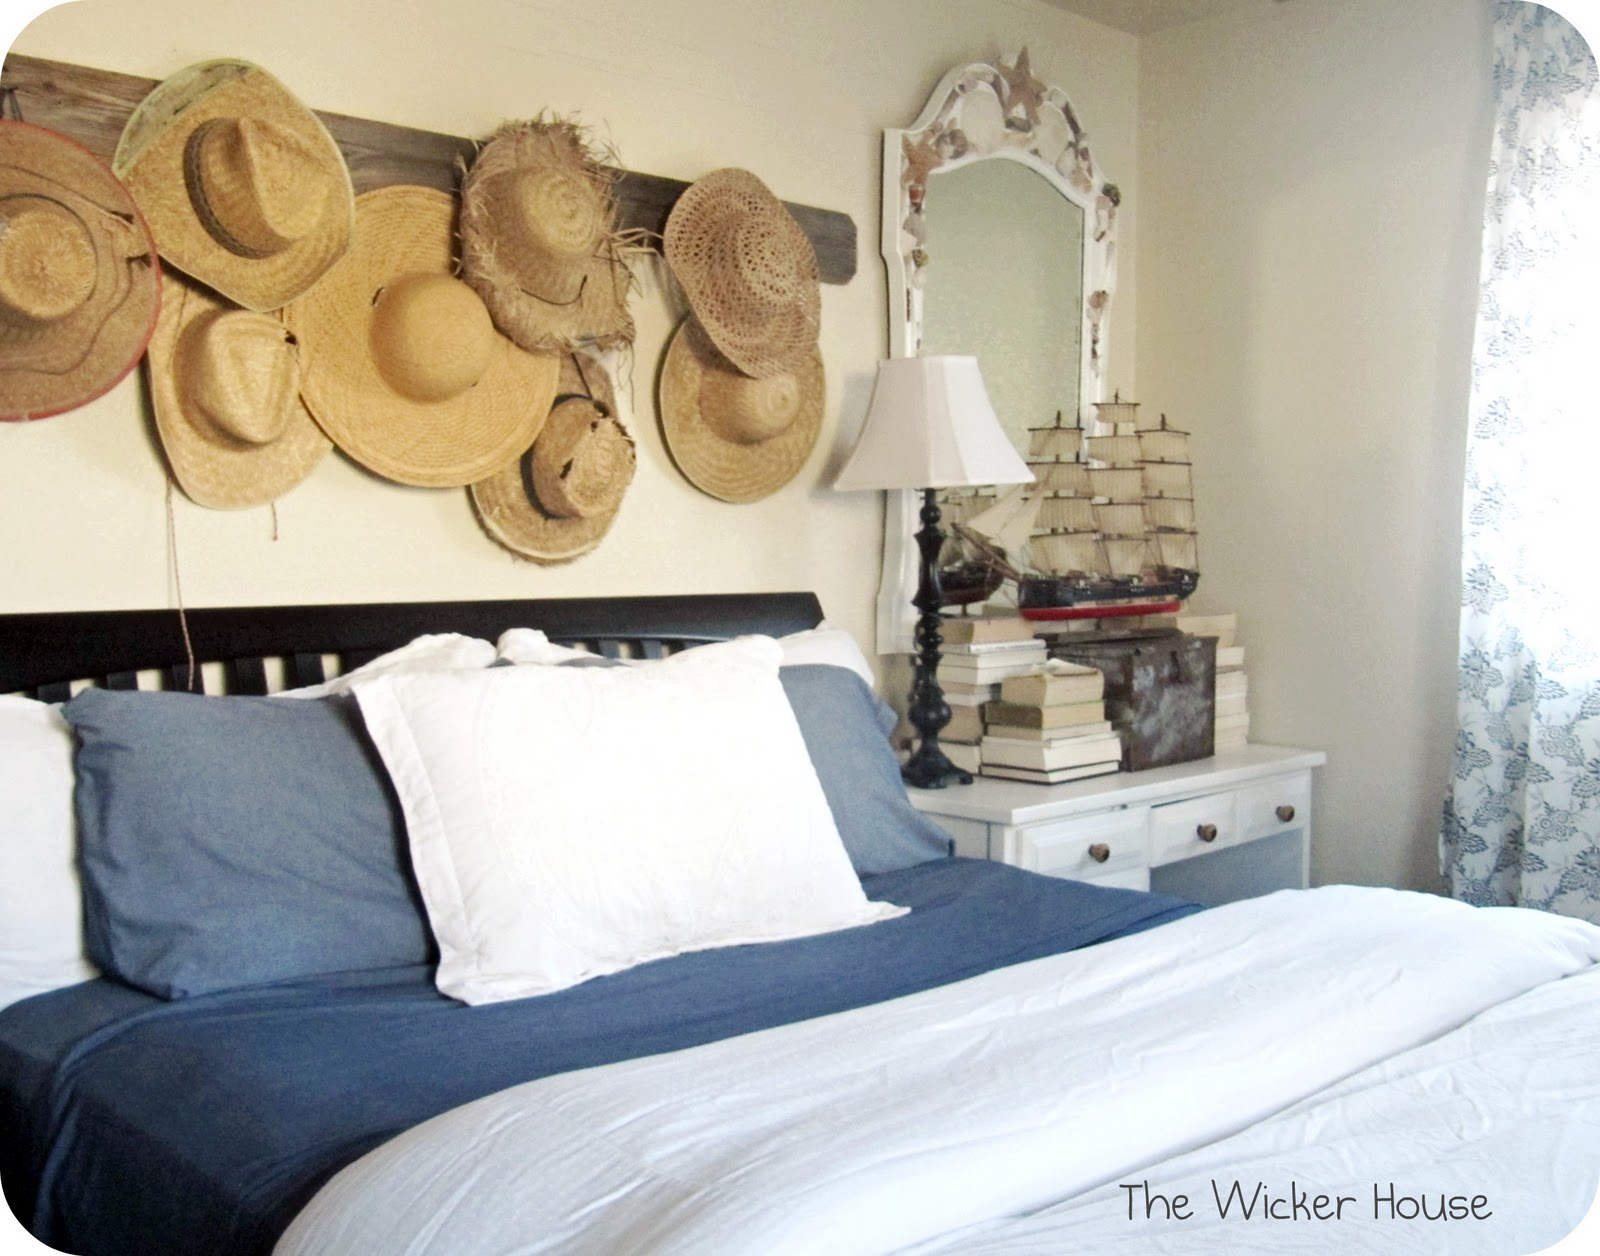 Decorating With Straw Hats Part 2 The Wicker House